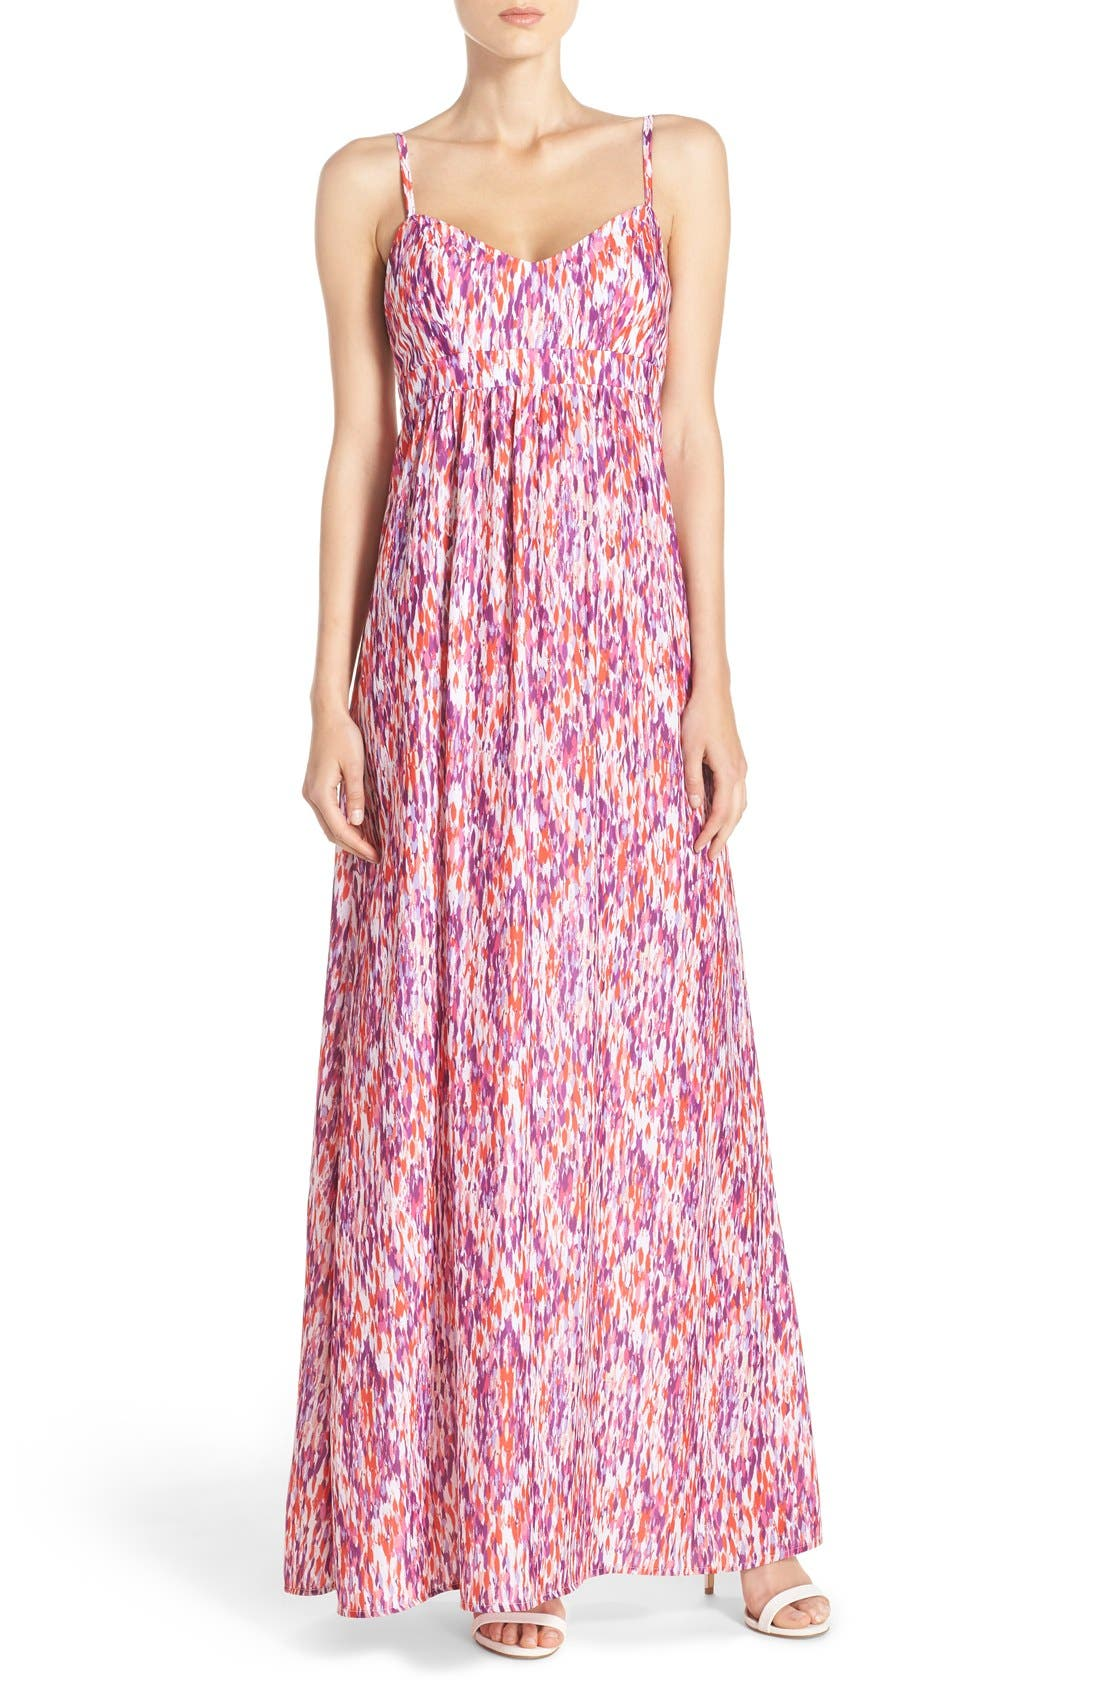 Alternate Image 1 Selected - Felicity & Coco Colby Woven Maxi Dress (Regular & Petite) (Nordstrom Exclusive)